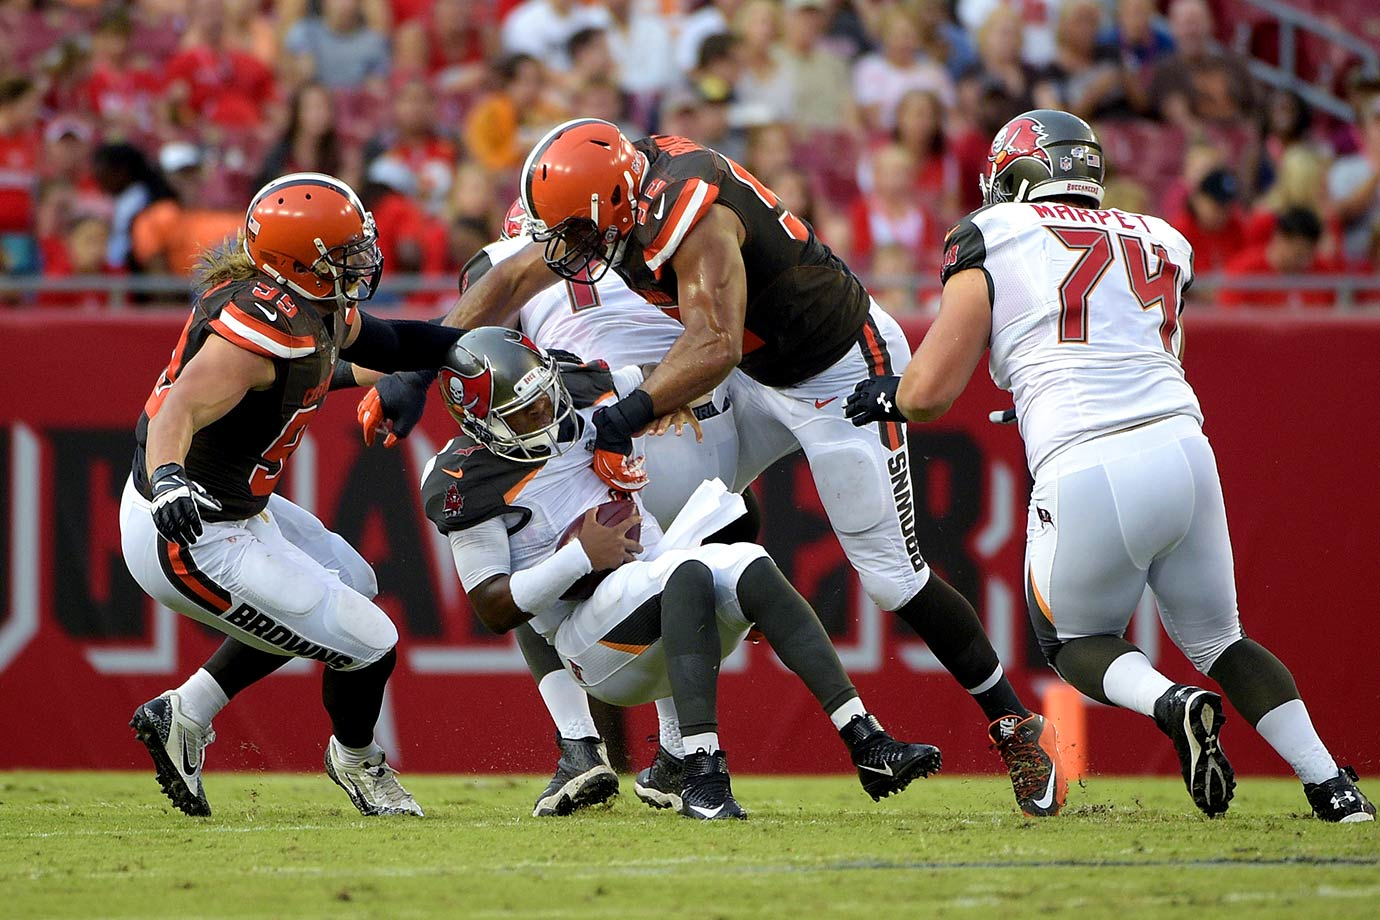 No doubt, this offense will be more dynamic with No. 1 overall pick Jameis Winston under center. But the Buccaneers offensive line allowed 3.25 sacks per game last season (30th in the NFL), and then starting right tackle Demar Dotson suffered a sprained MCL early in the preseason.